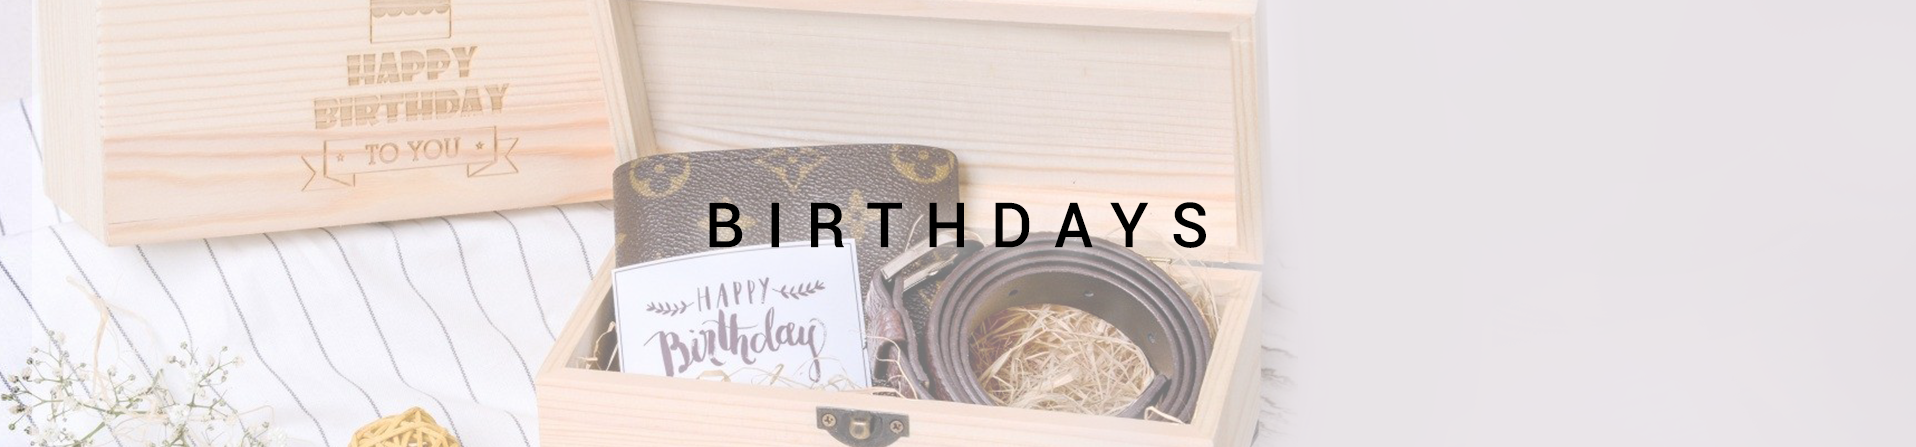 - Gifts For Birthdays -